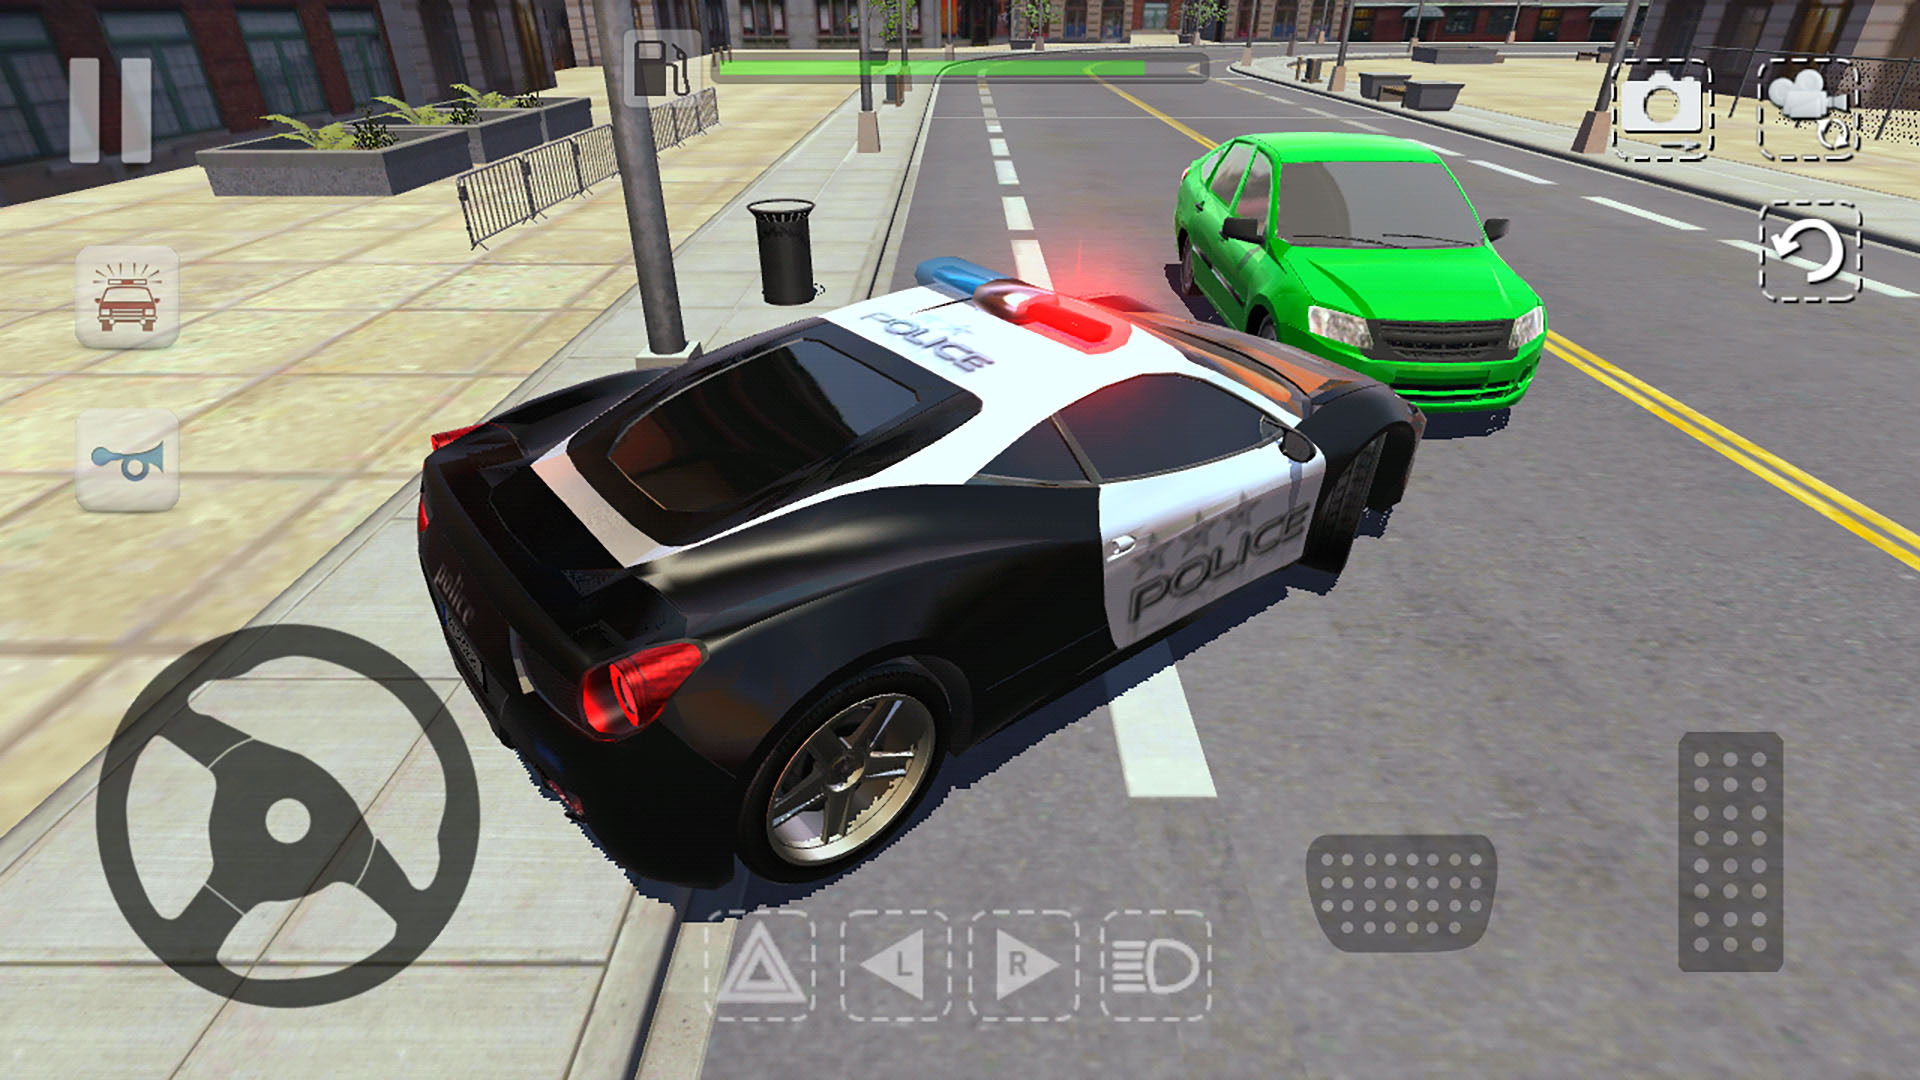 Car Chase Games: Police Car: Chase: Amazon.es: Appstore Para Android